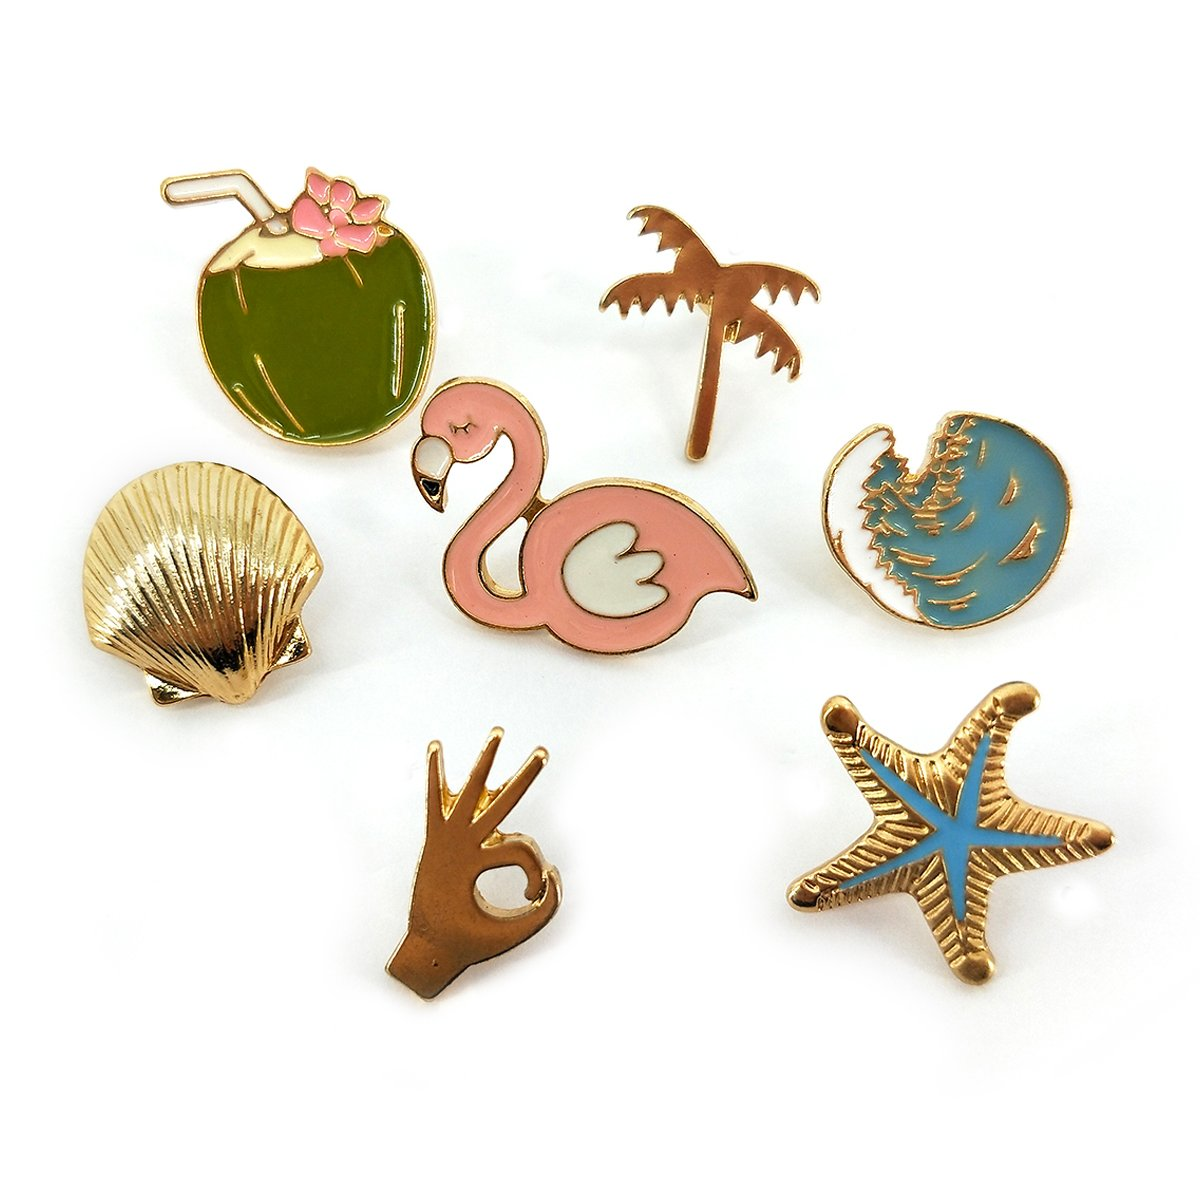 Gold Plated Brooch Pin for Women Enamel Cute Mini Badges Cat Pineapple Lapel Pins for Clothing Decor (Set 12)